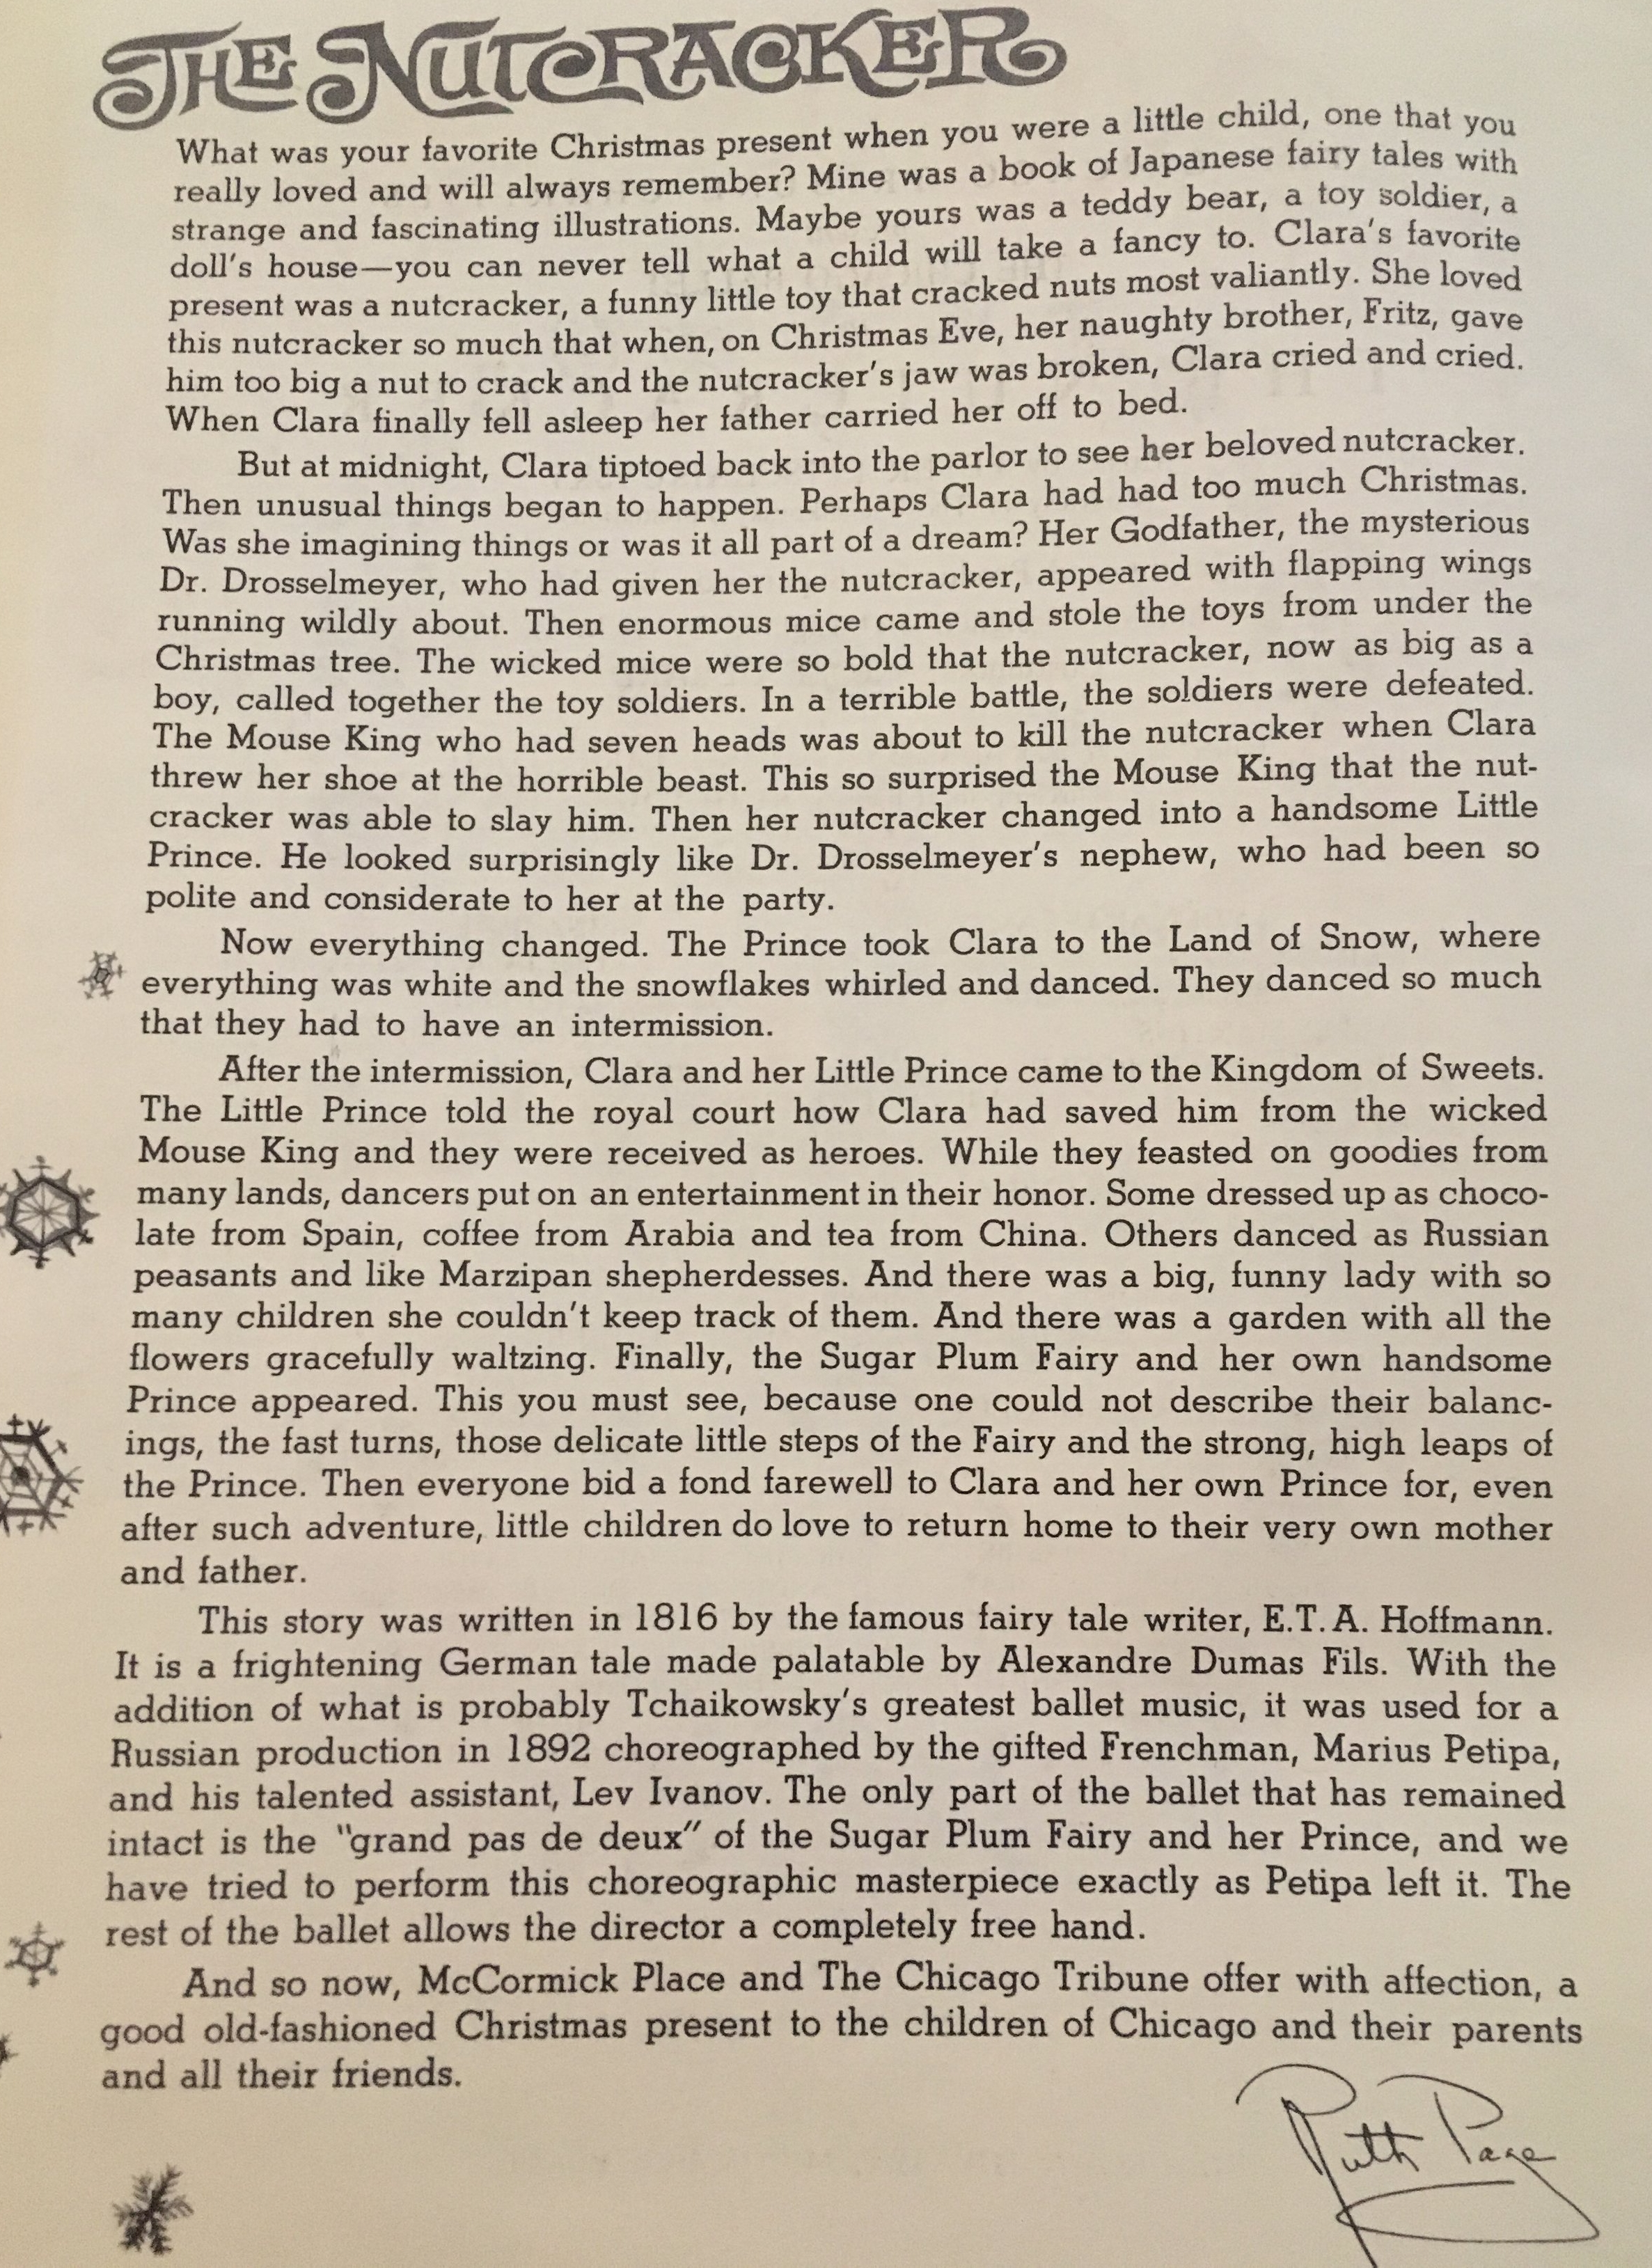 A program note from Ruth Page - 1974